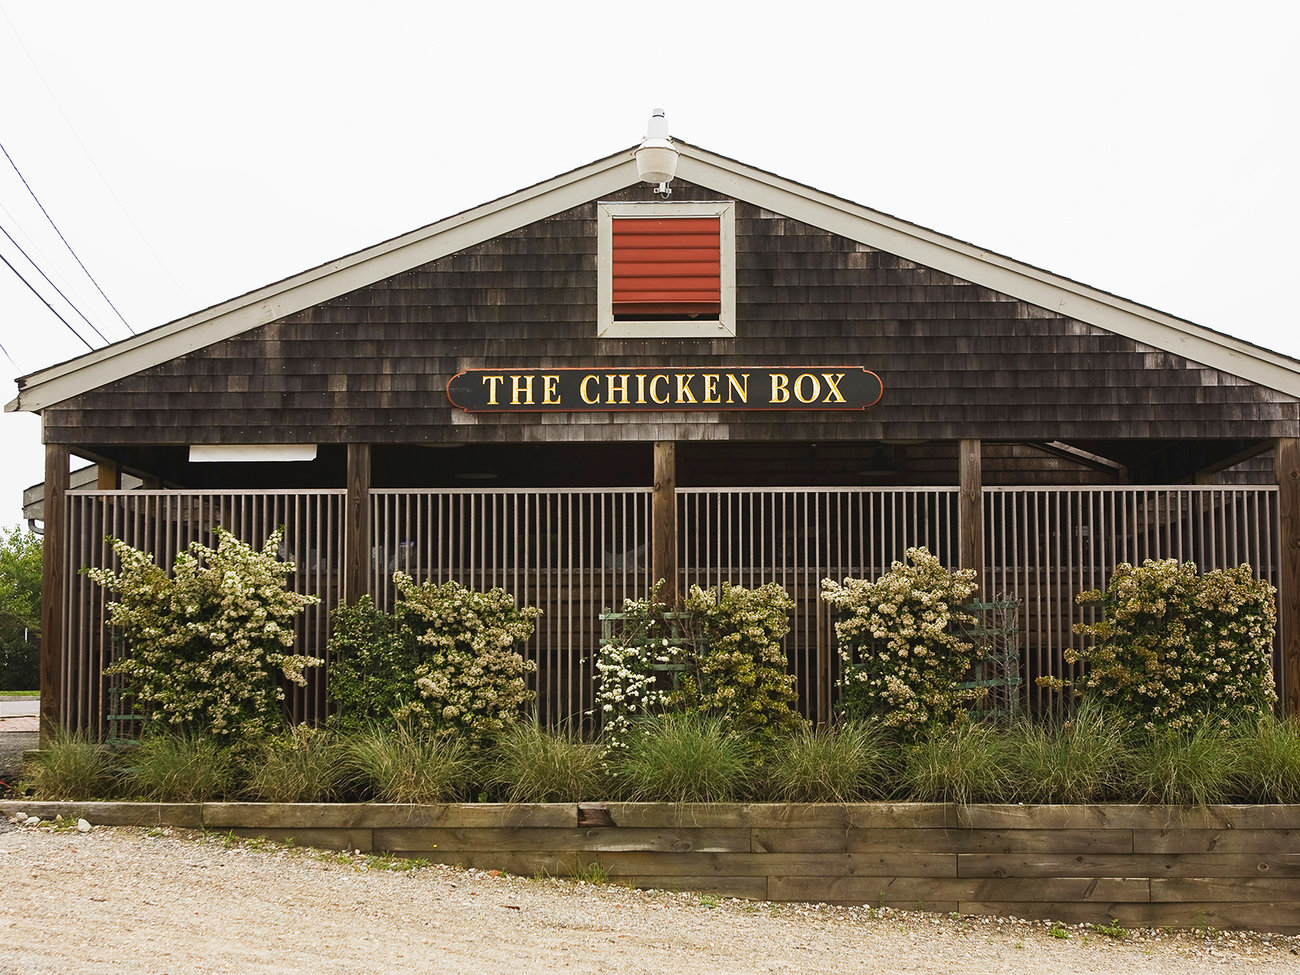 The Chicken Box Bar in Nantucket